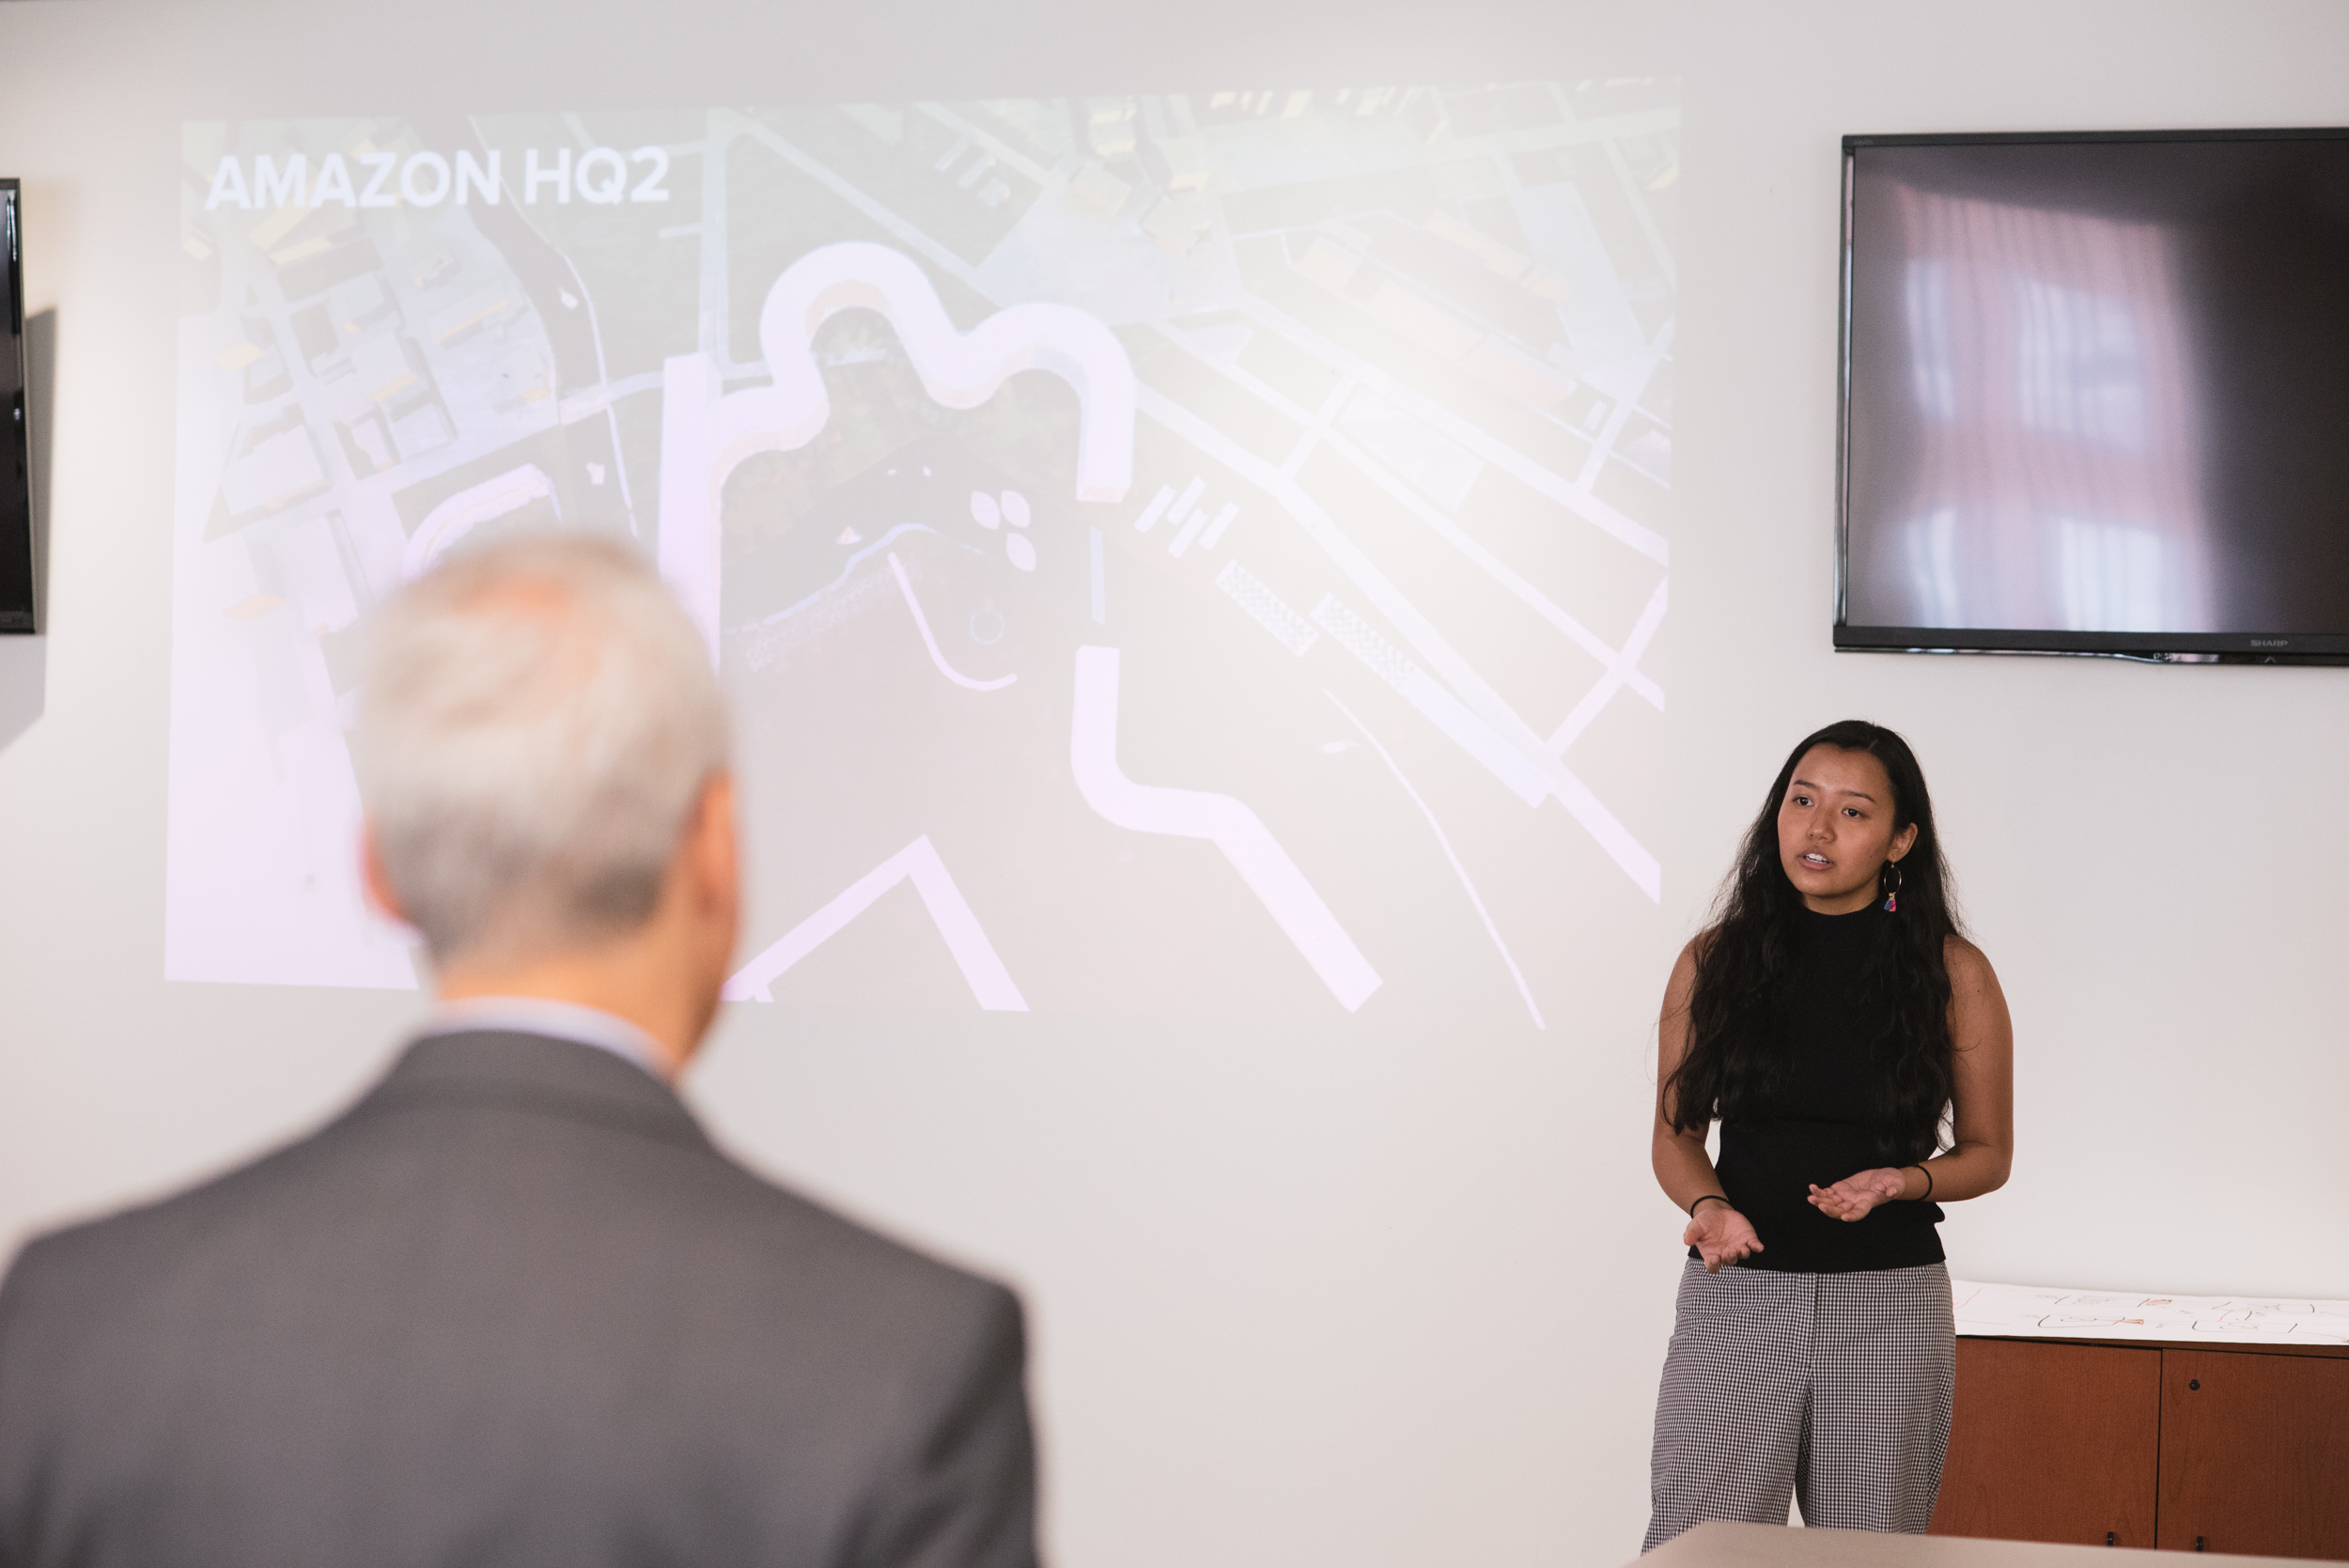 ACE student Liliane Tran presents vision for Amazon HQ2 to mayor Rahm Emanuel